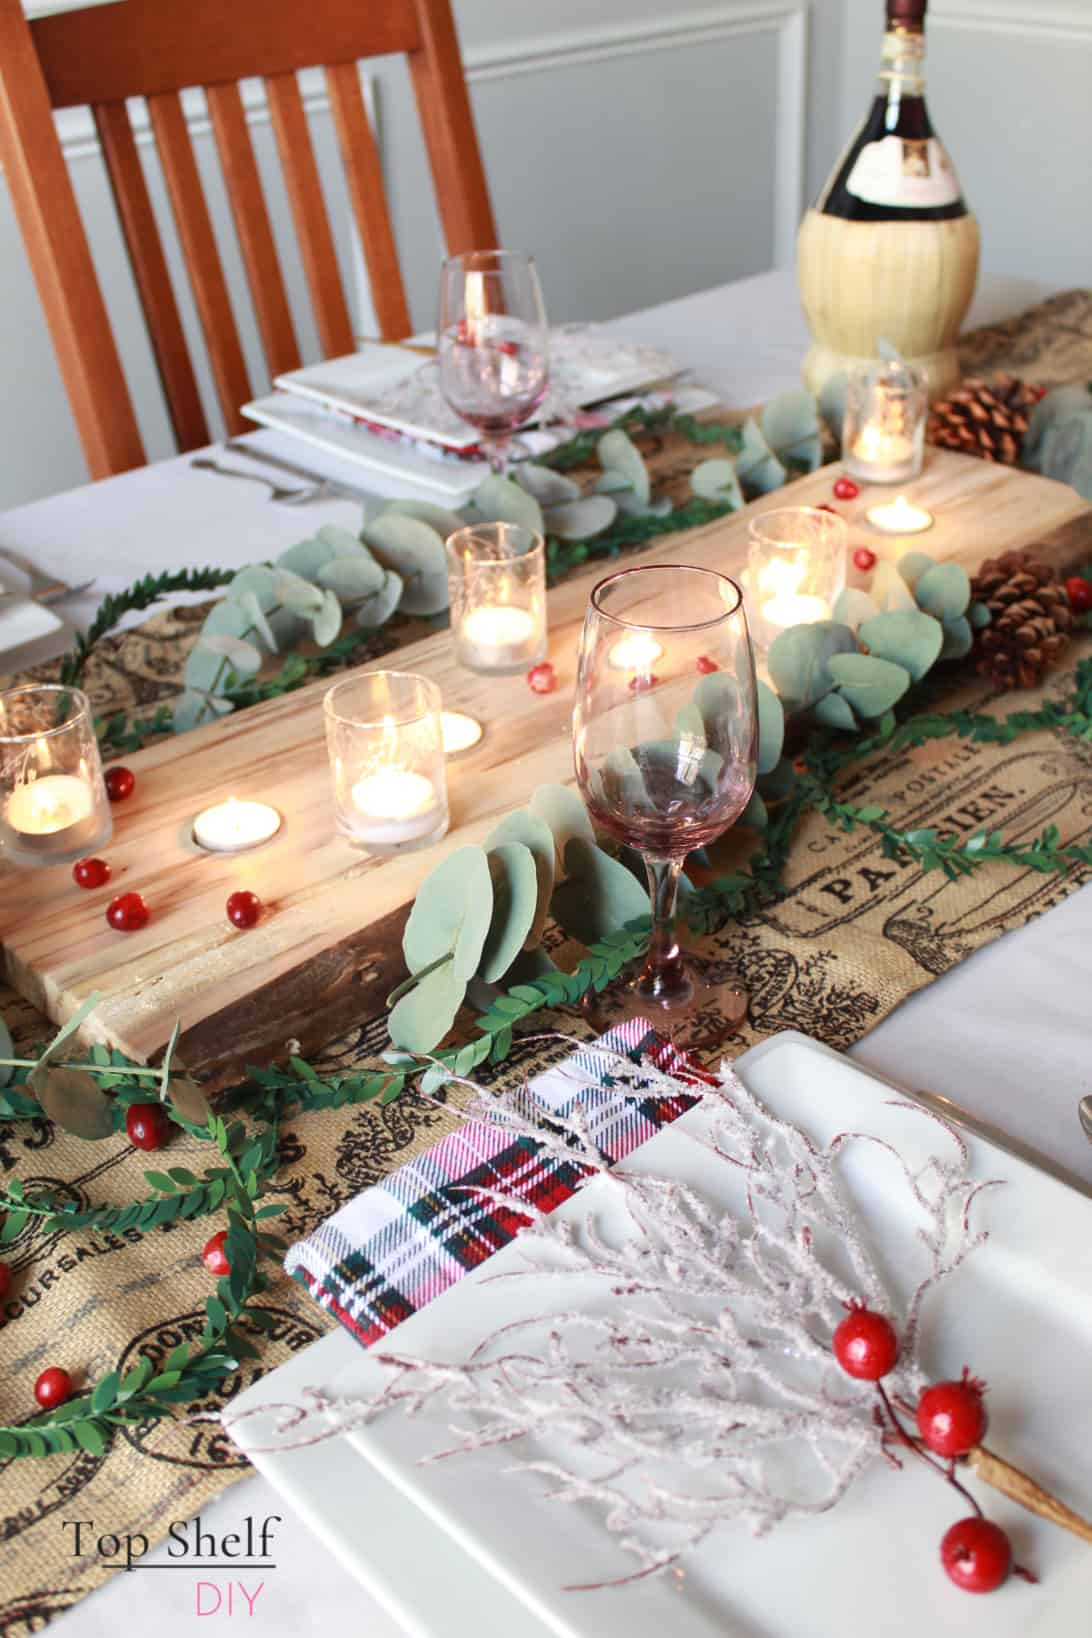 Learn how to make this candle holder and 4 other Christmas wood projects this season. #woodgifts #woodworking